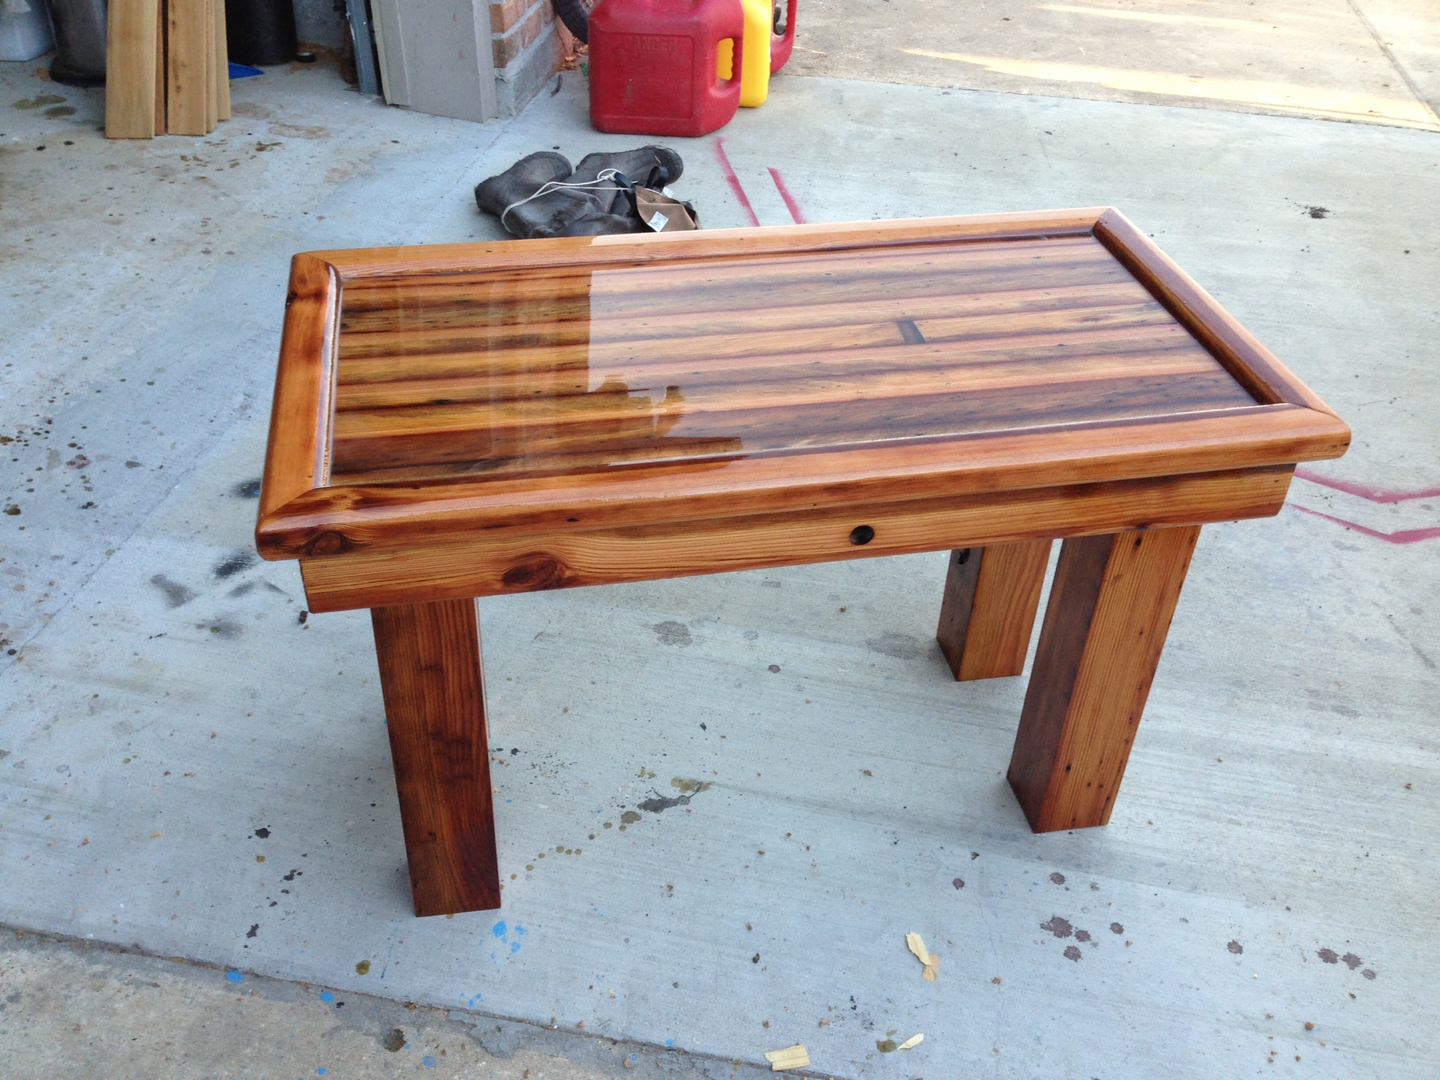 Reclaimed Cypress Coffee Table I Am Finishing Up With This Weekend The Top Has Plenty